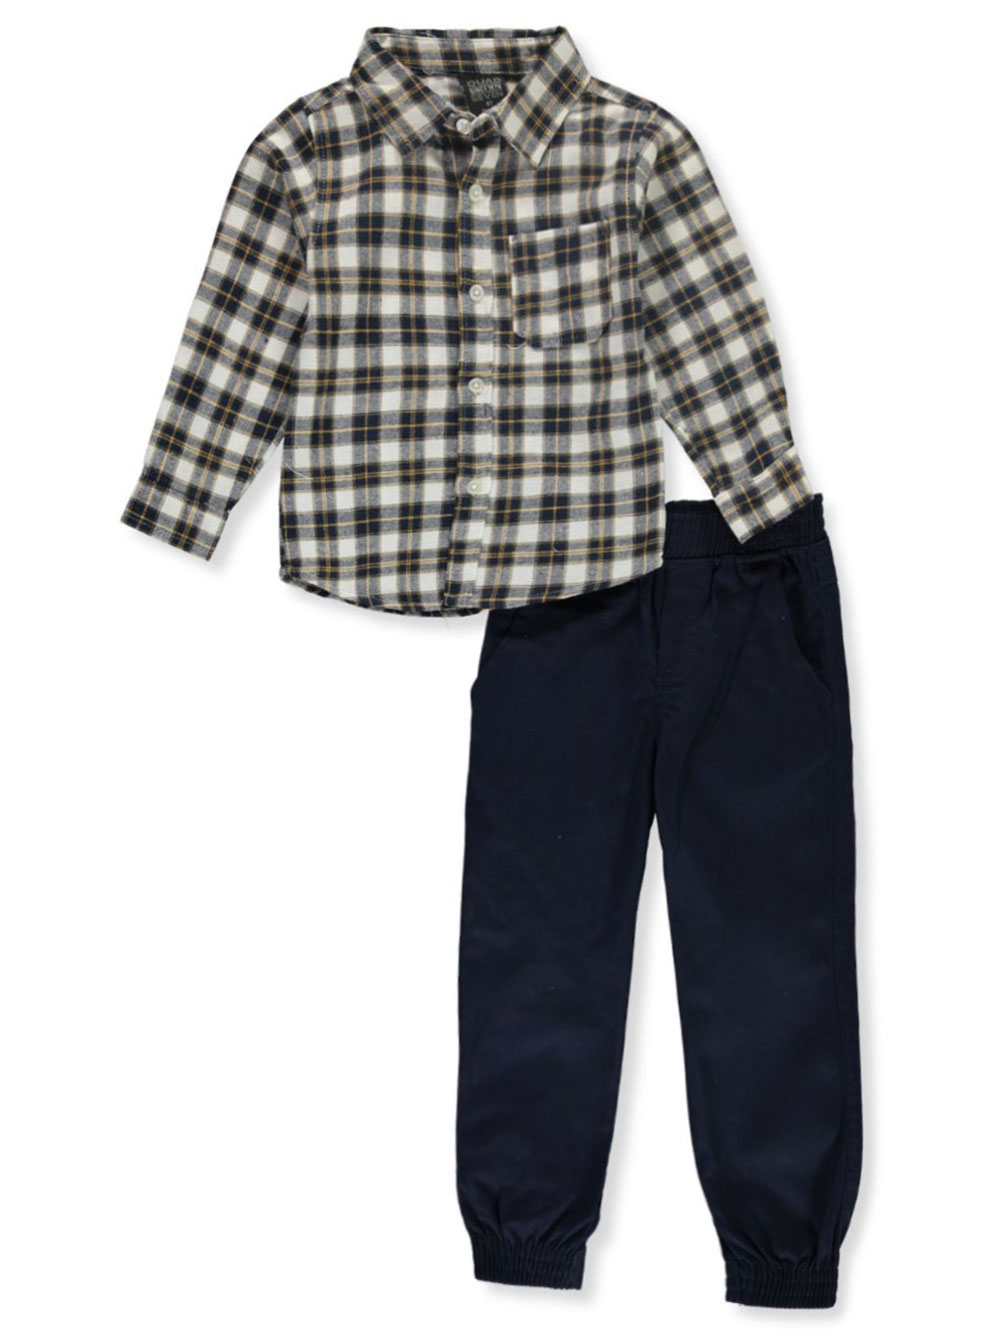 Boys Navy/Multi Button-Downs